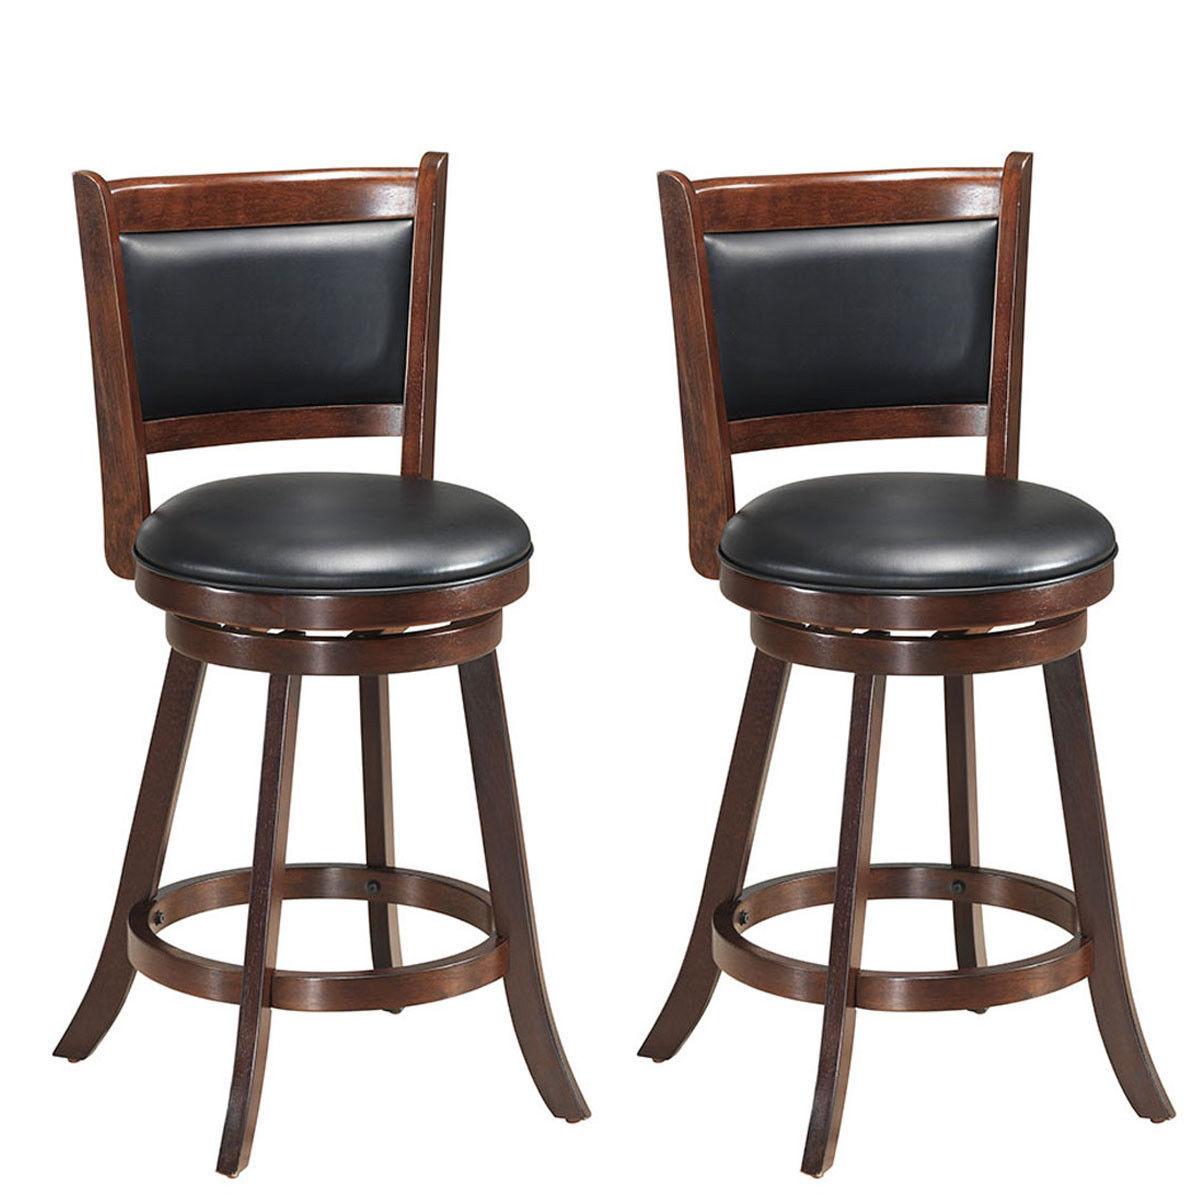 Costway Set Of 2 24'' Swivel Counter Stool Wooden Dining